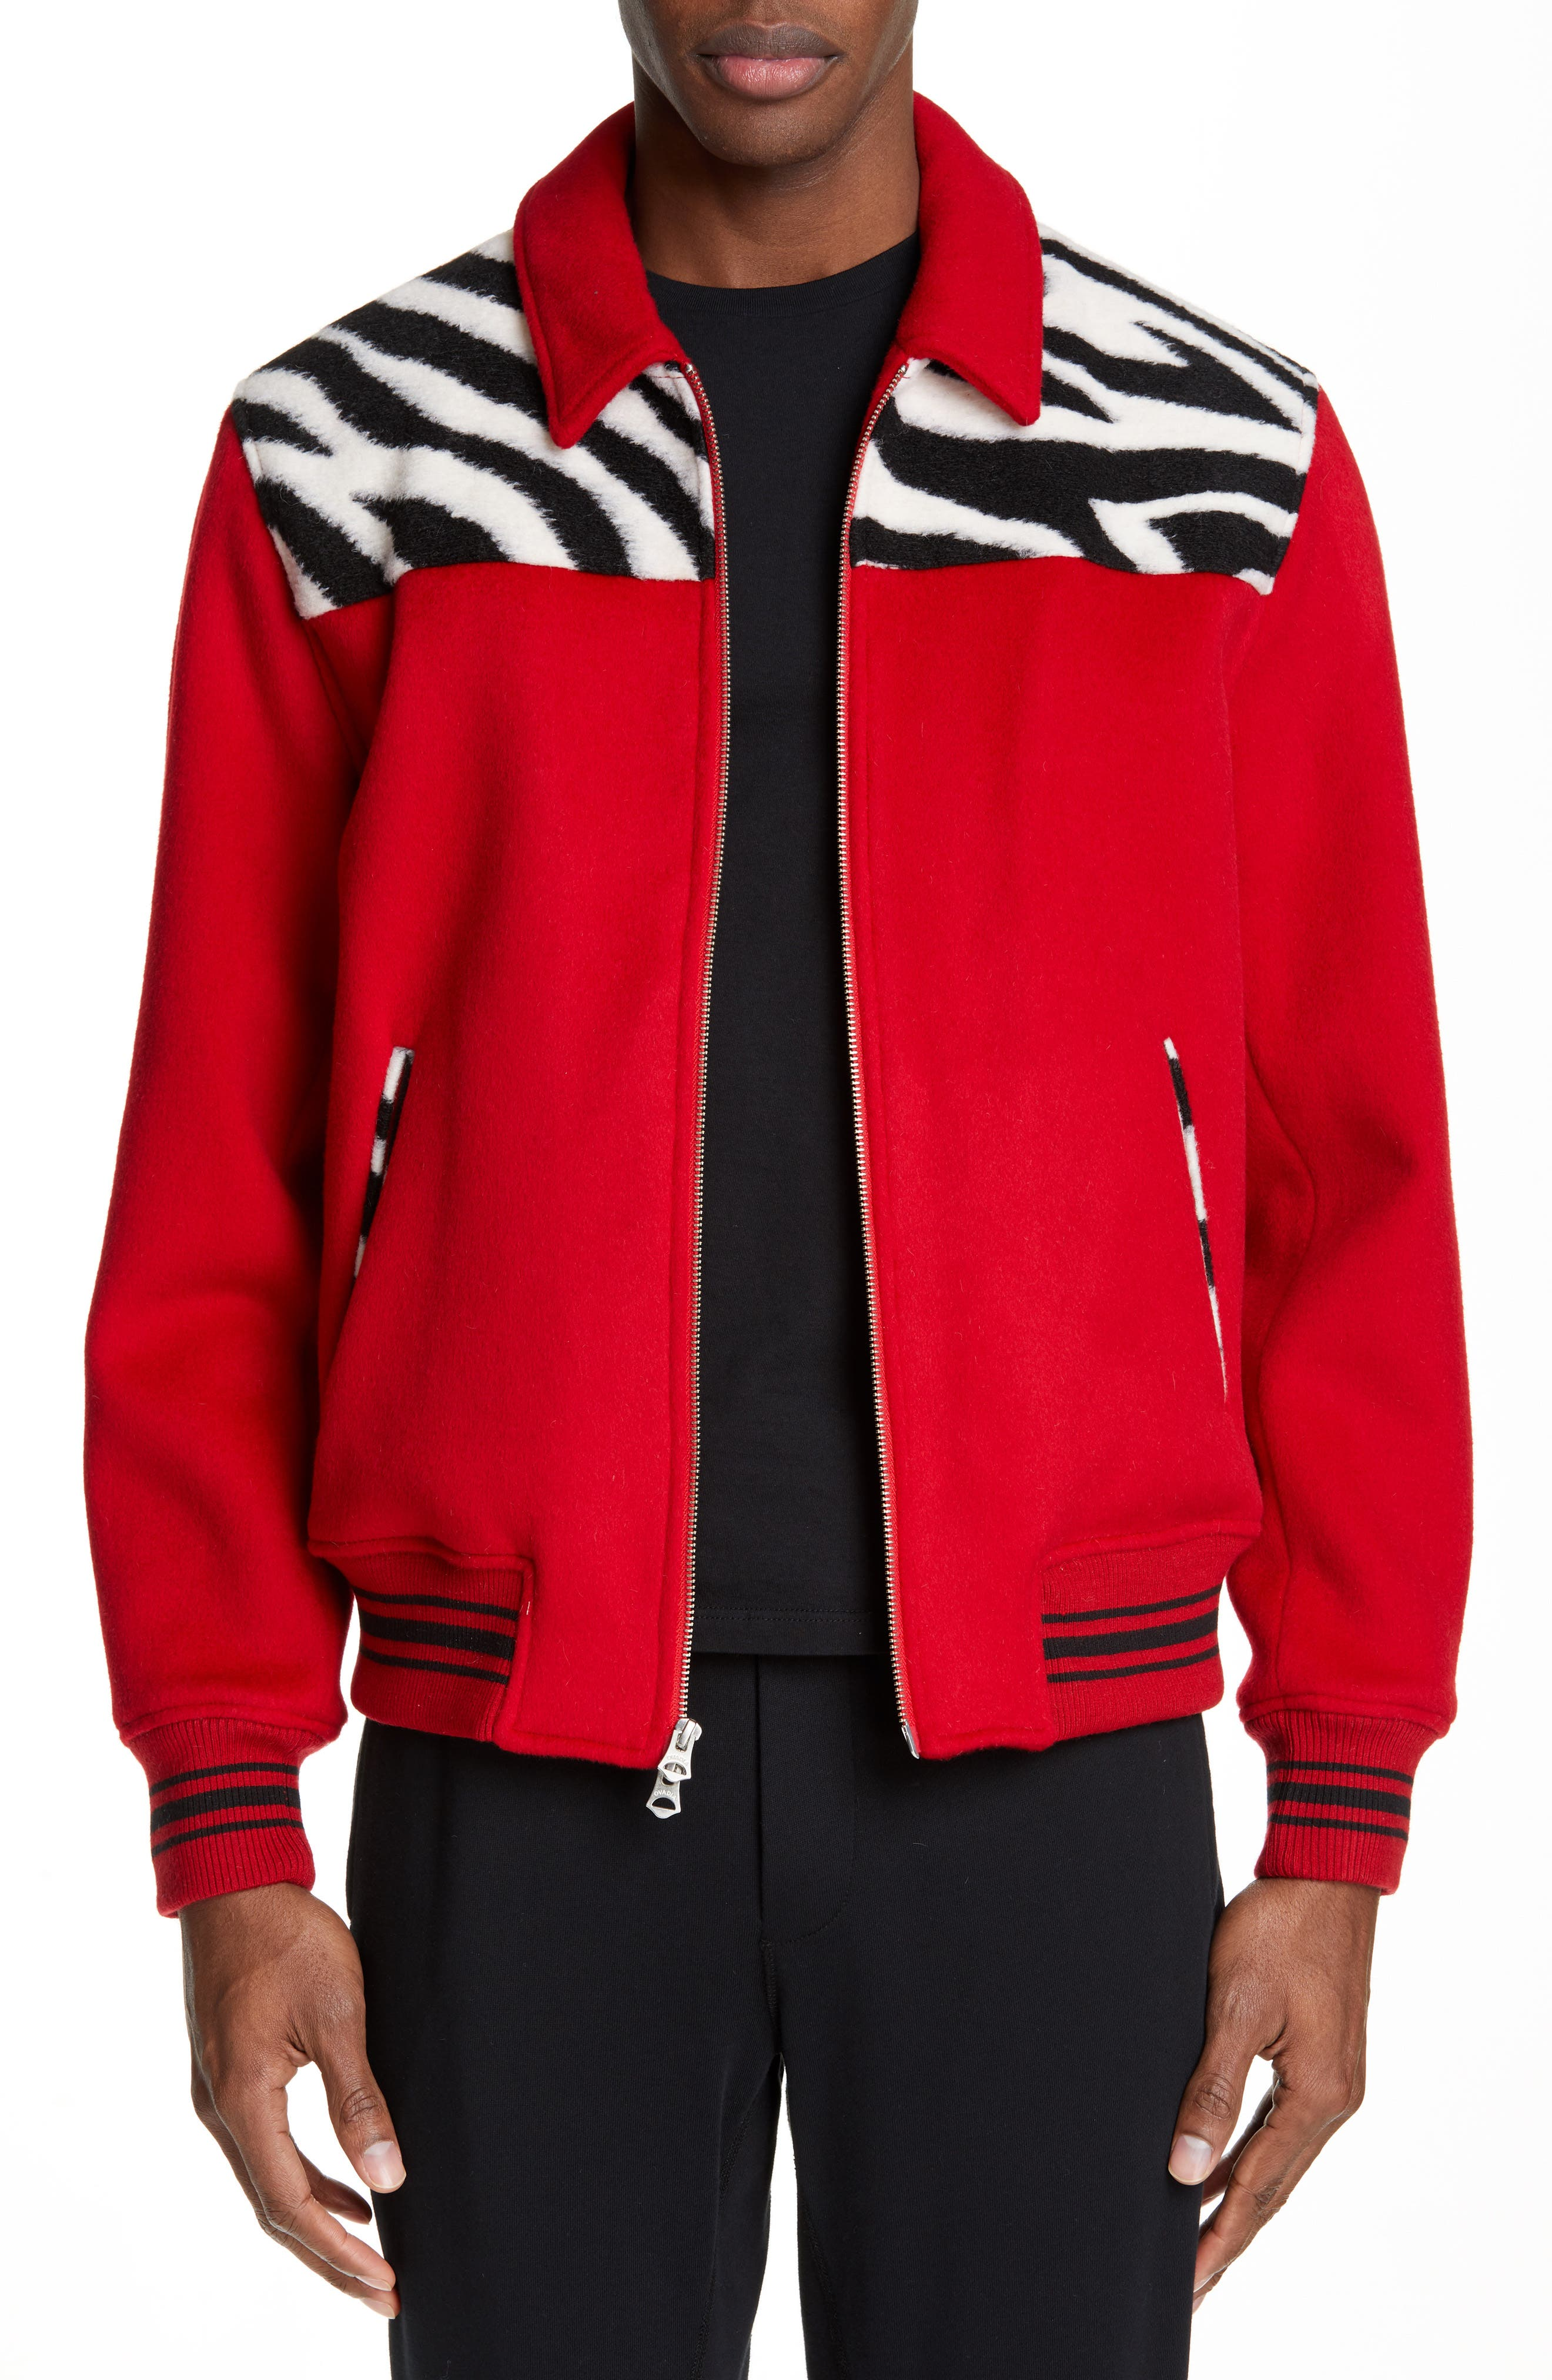 458a67361e9 $1090 Men's Ovadia & Sons Wool Varsity Jacket, Size Large - Red